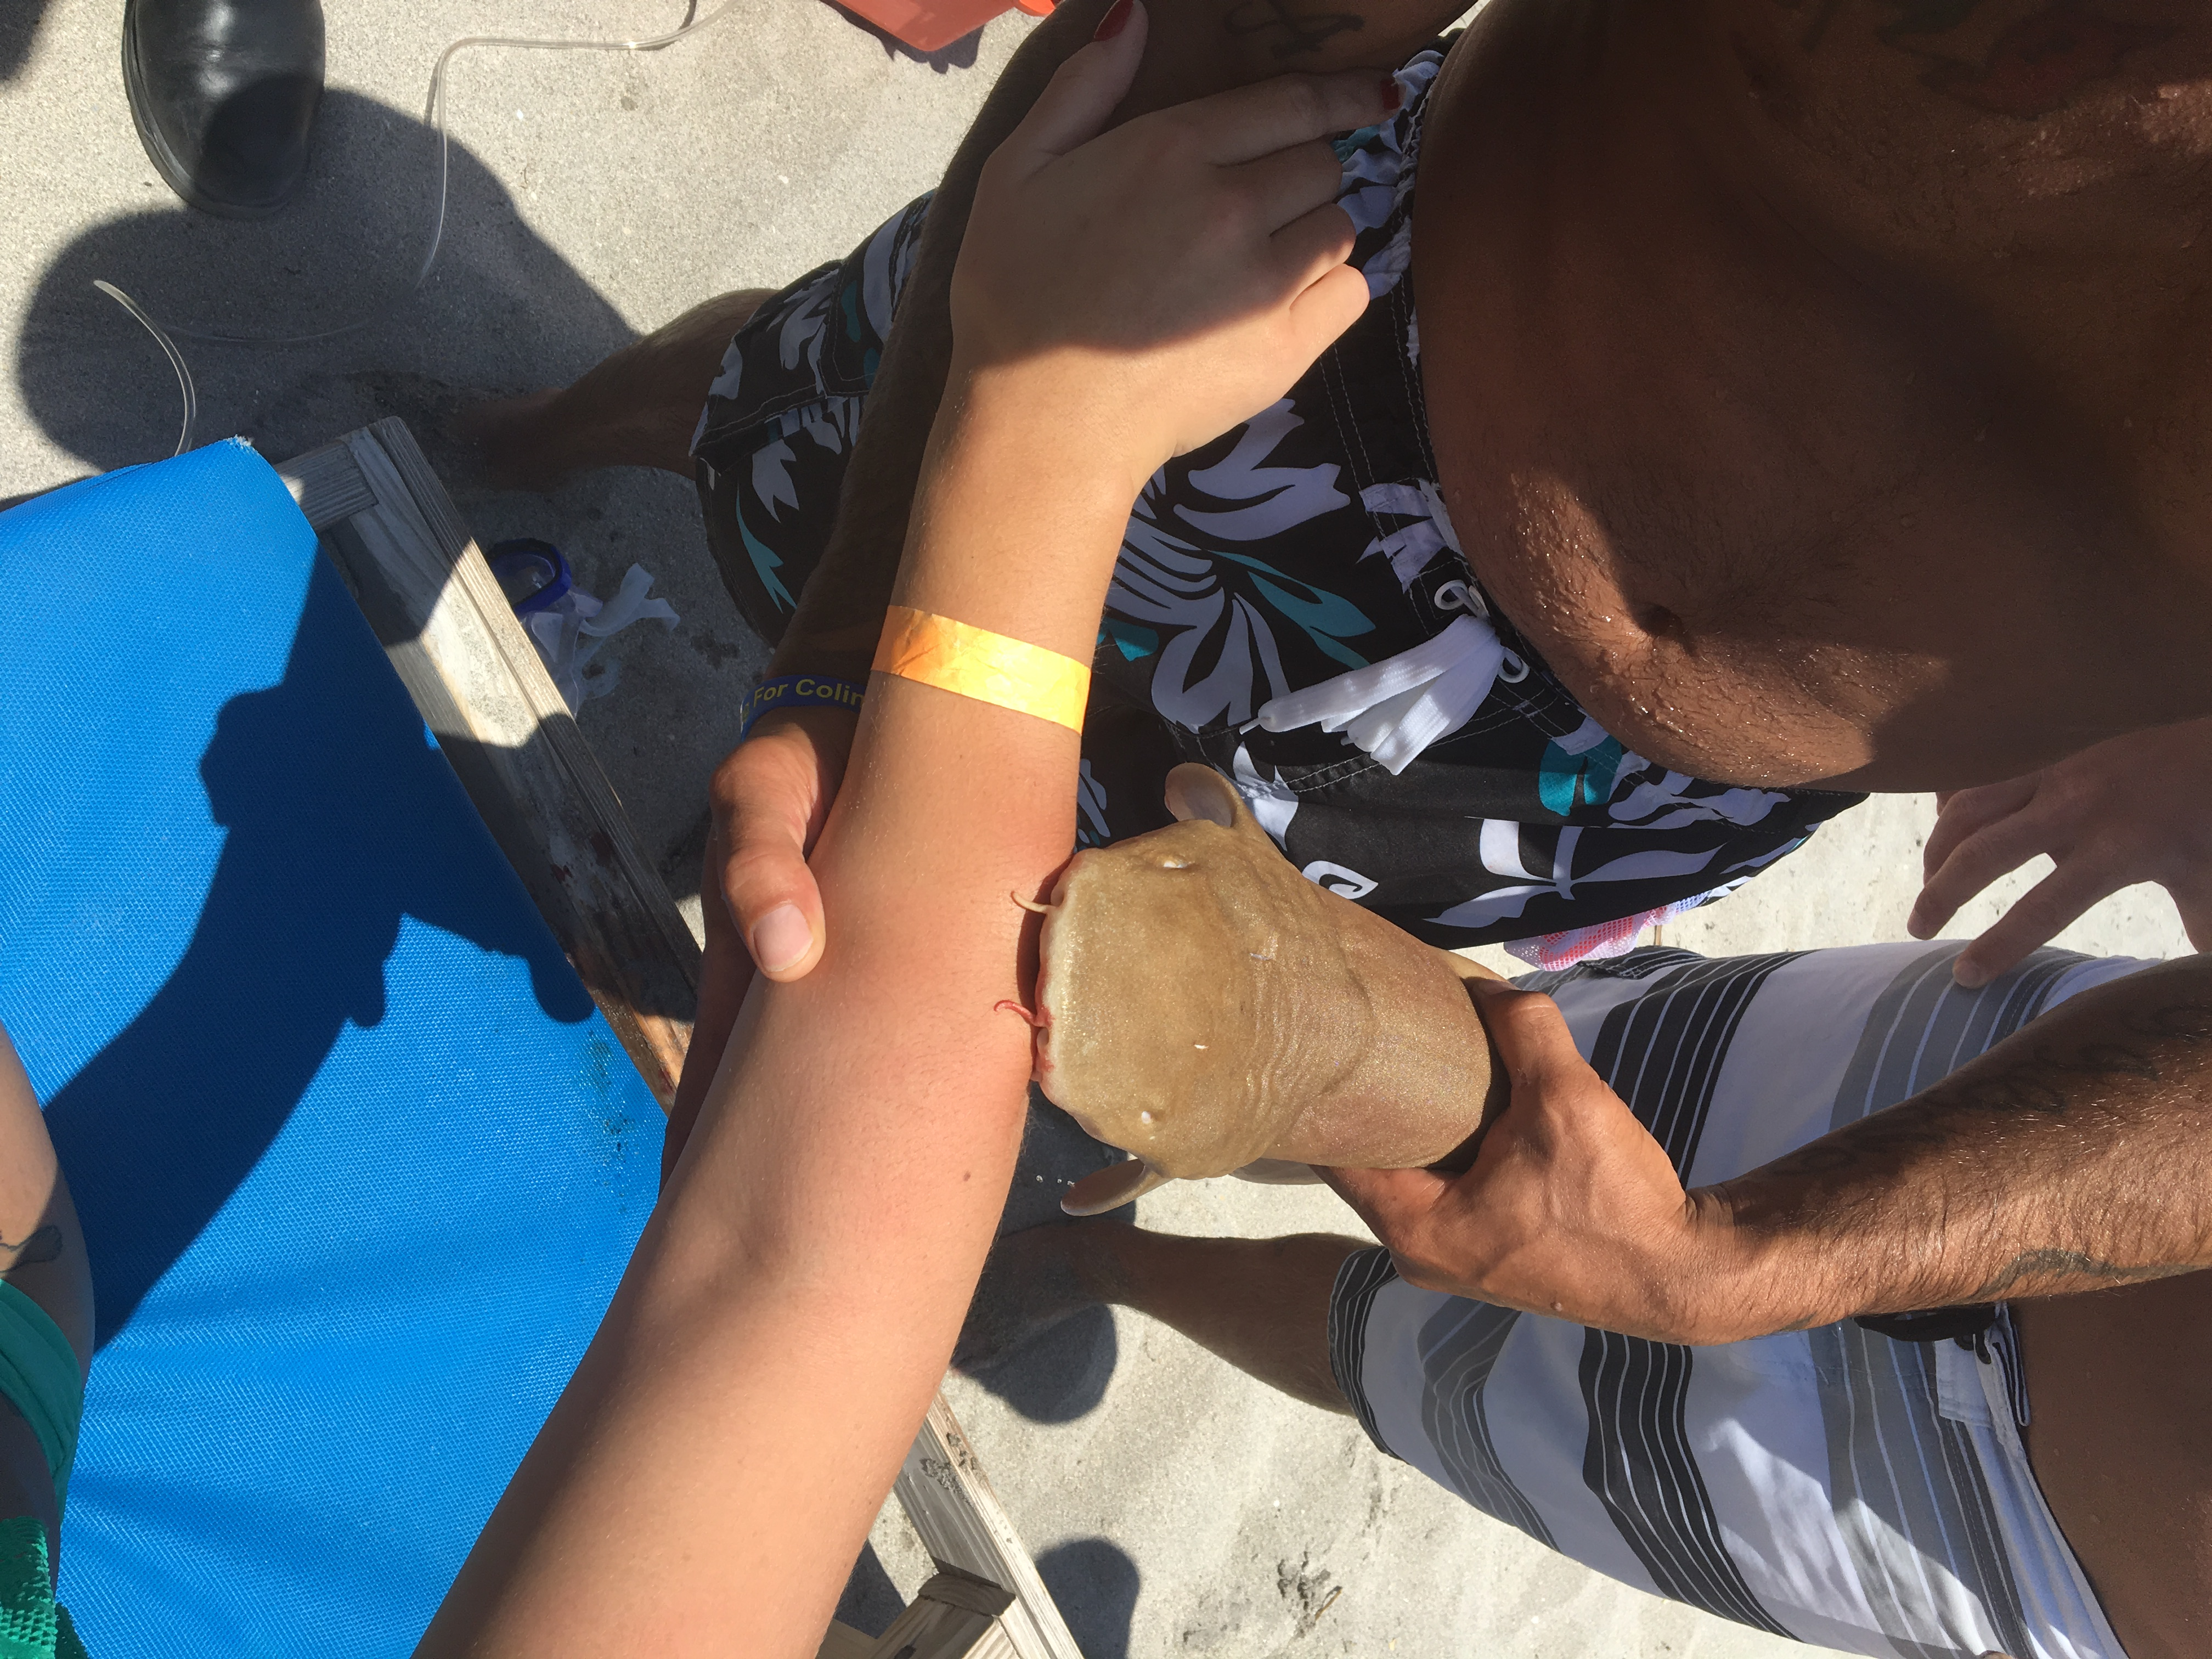 A photo provided by Boca Raton Fire Rescue Services show a nurse shark attached to a woman's arm in Boca Raton on May 15, 2016.